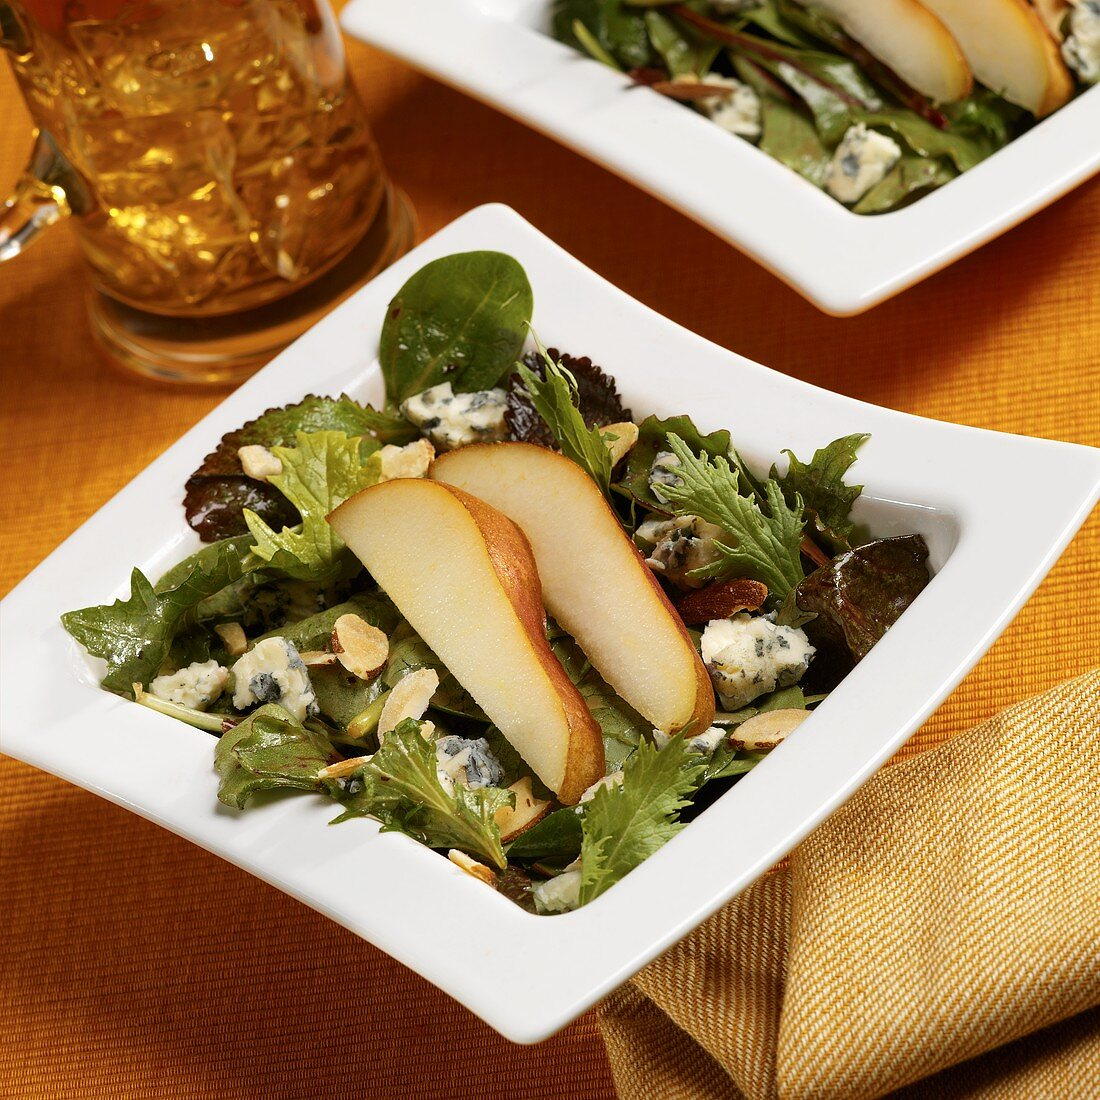 Spring Greens with Blue Cheese, Almonds and Pear Slices with Raspberry Vinaigrette